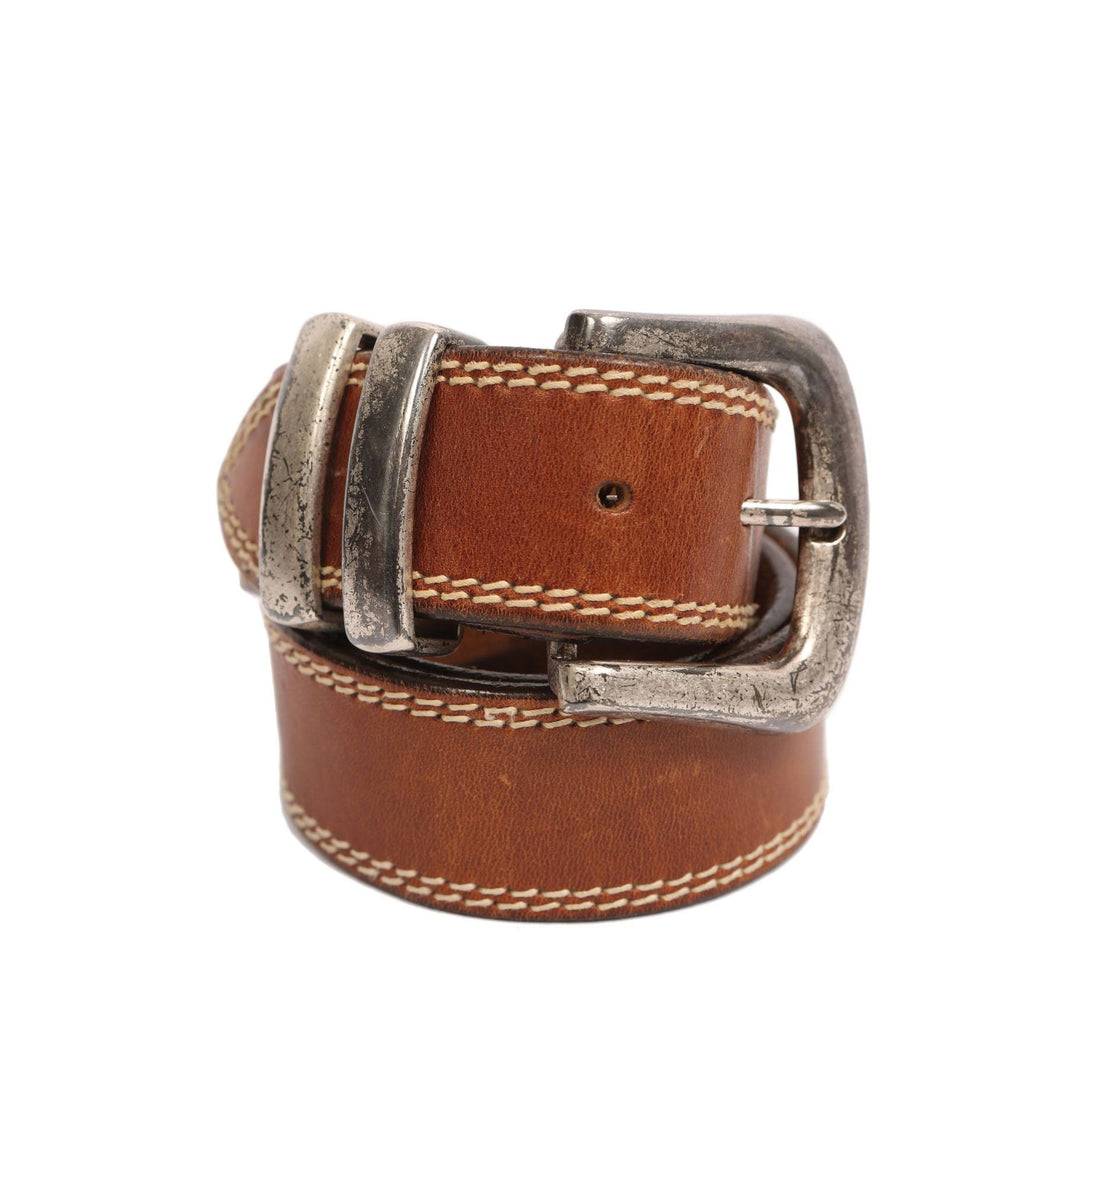 Vintage Brown Leather Double Stitch Belt - Vintage: Other - Iron and Resin